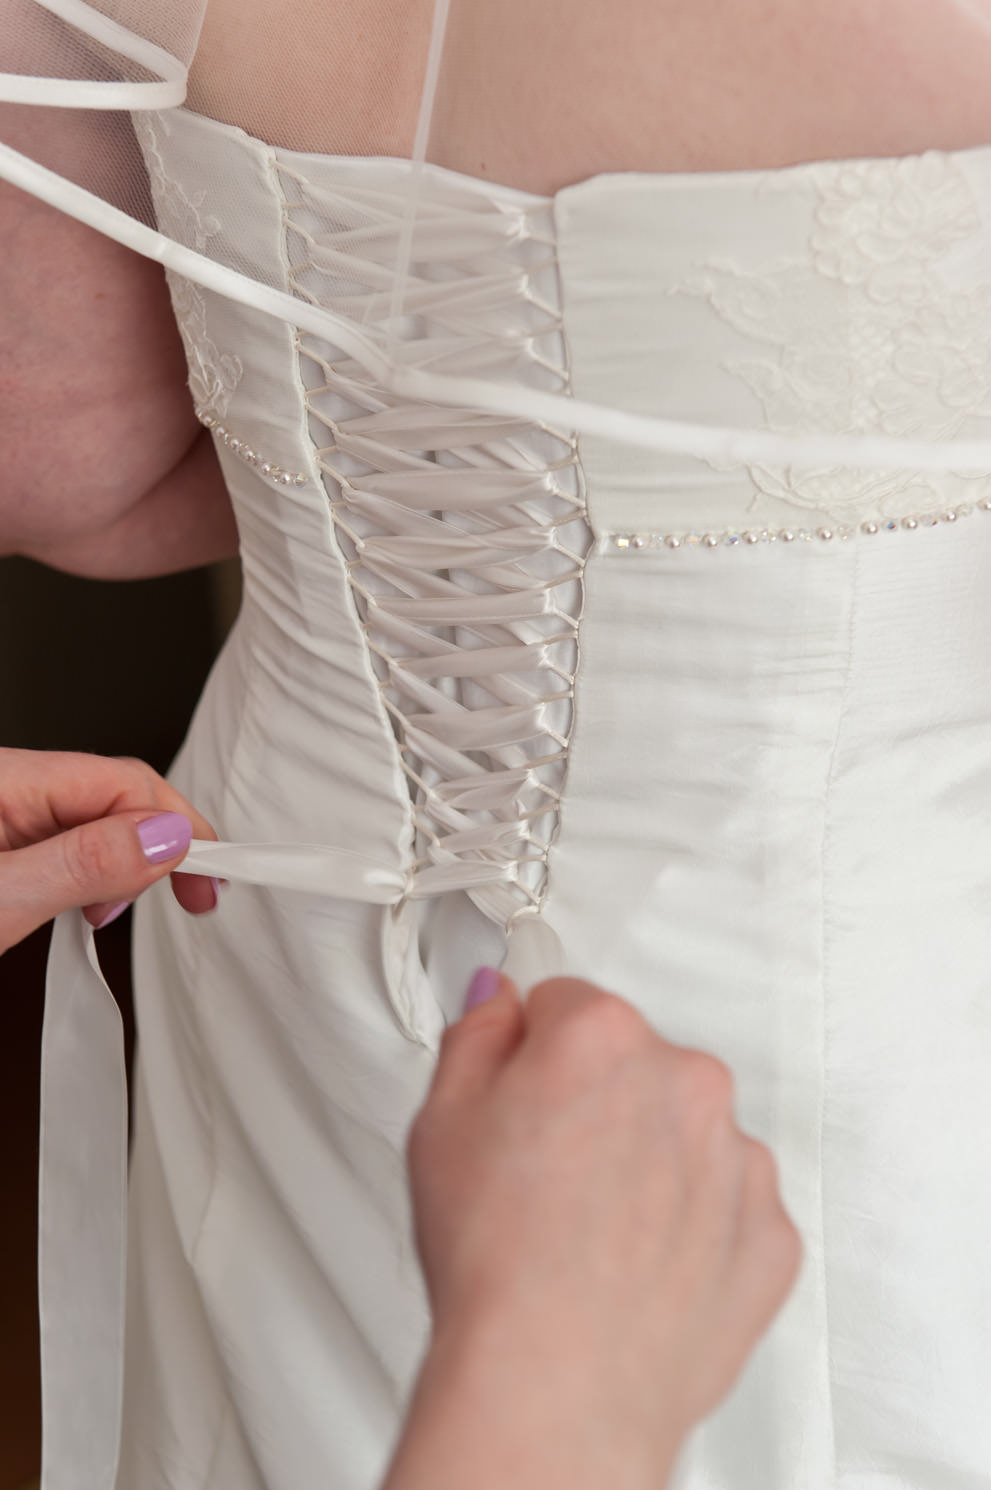 Corset fastening to bespoke wedding dress